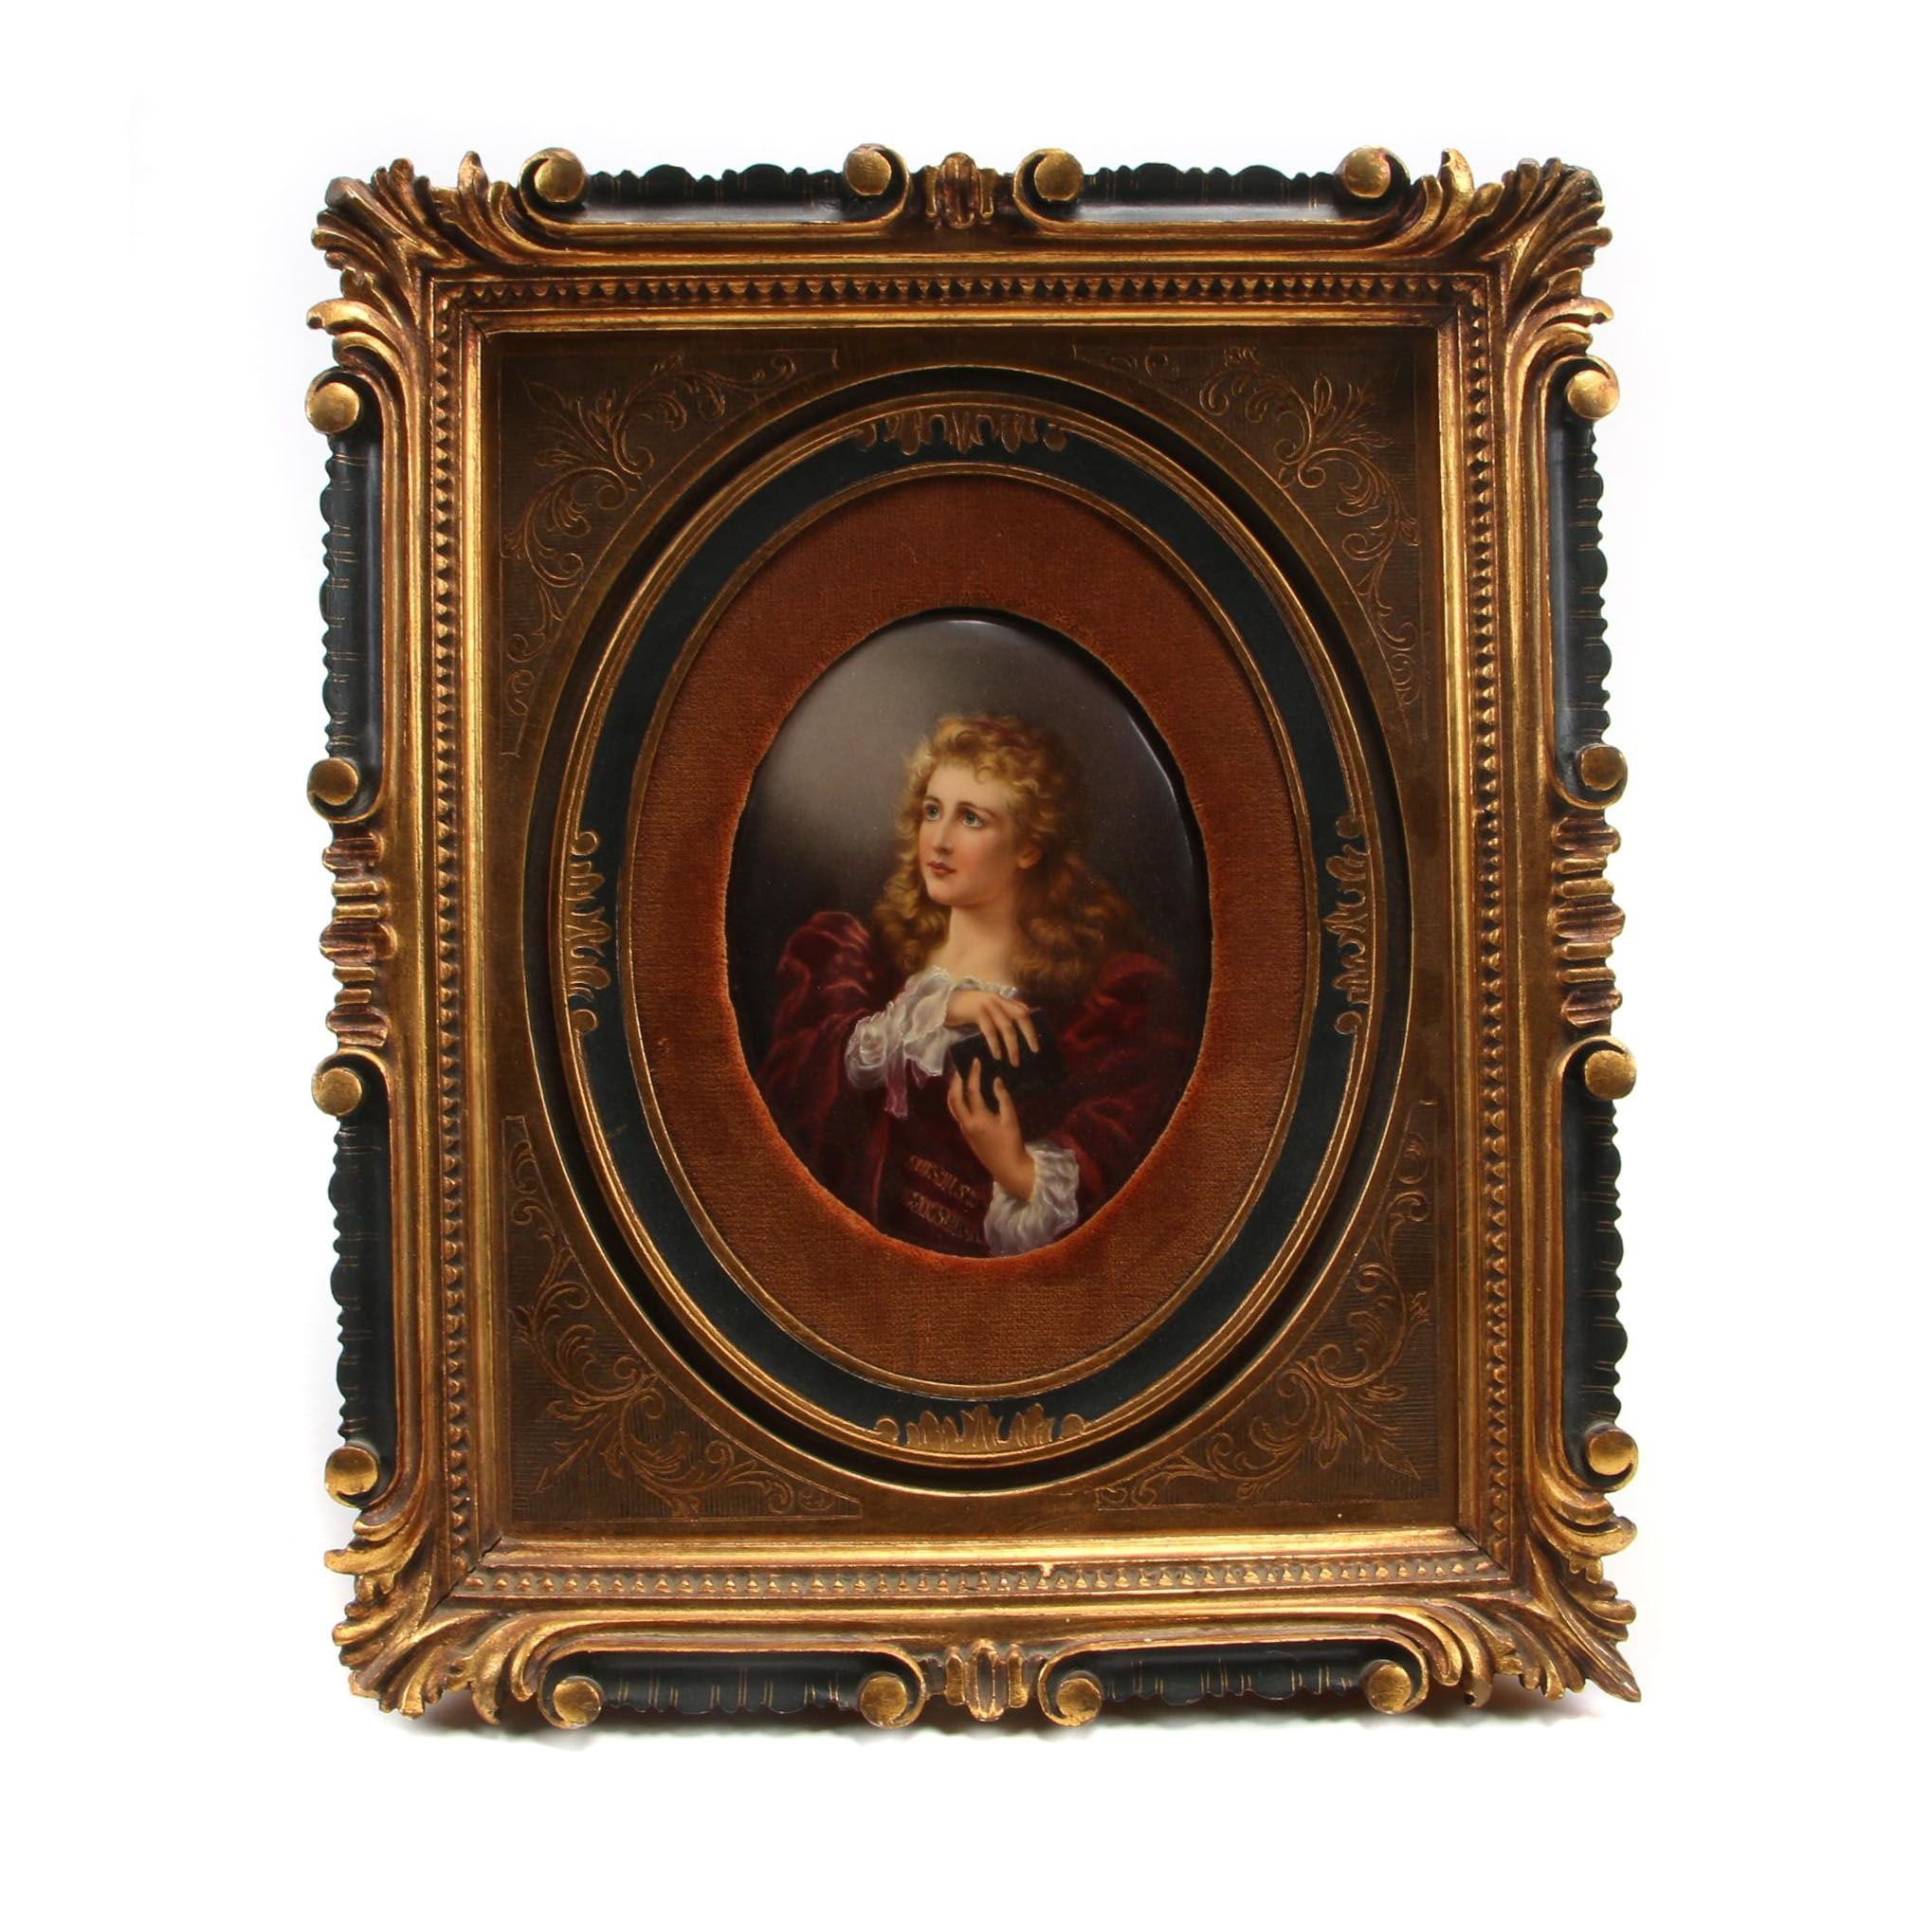 Painted Porcelain Plaque of Woman Holding Book in Gilt Framed